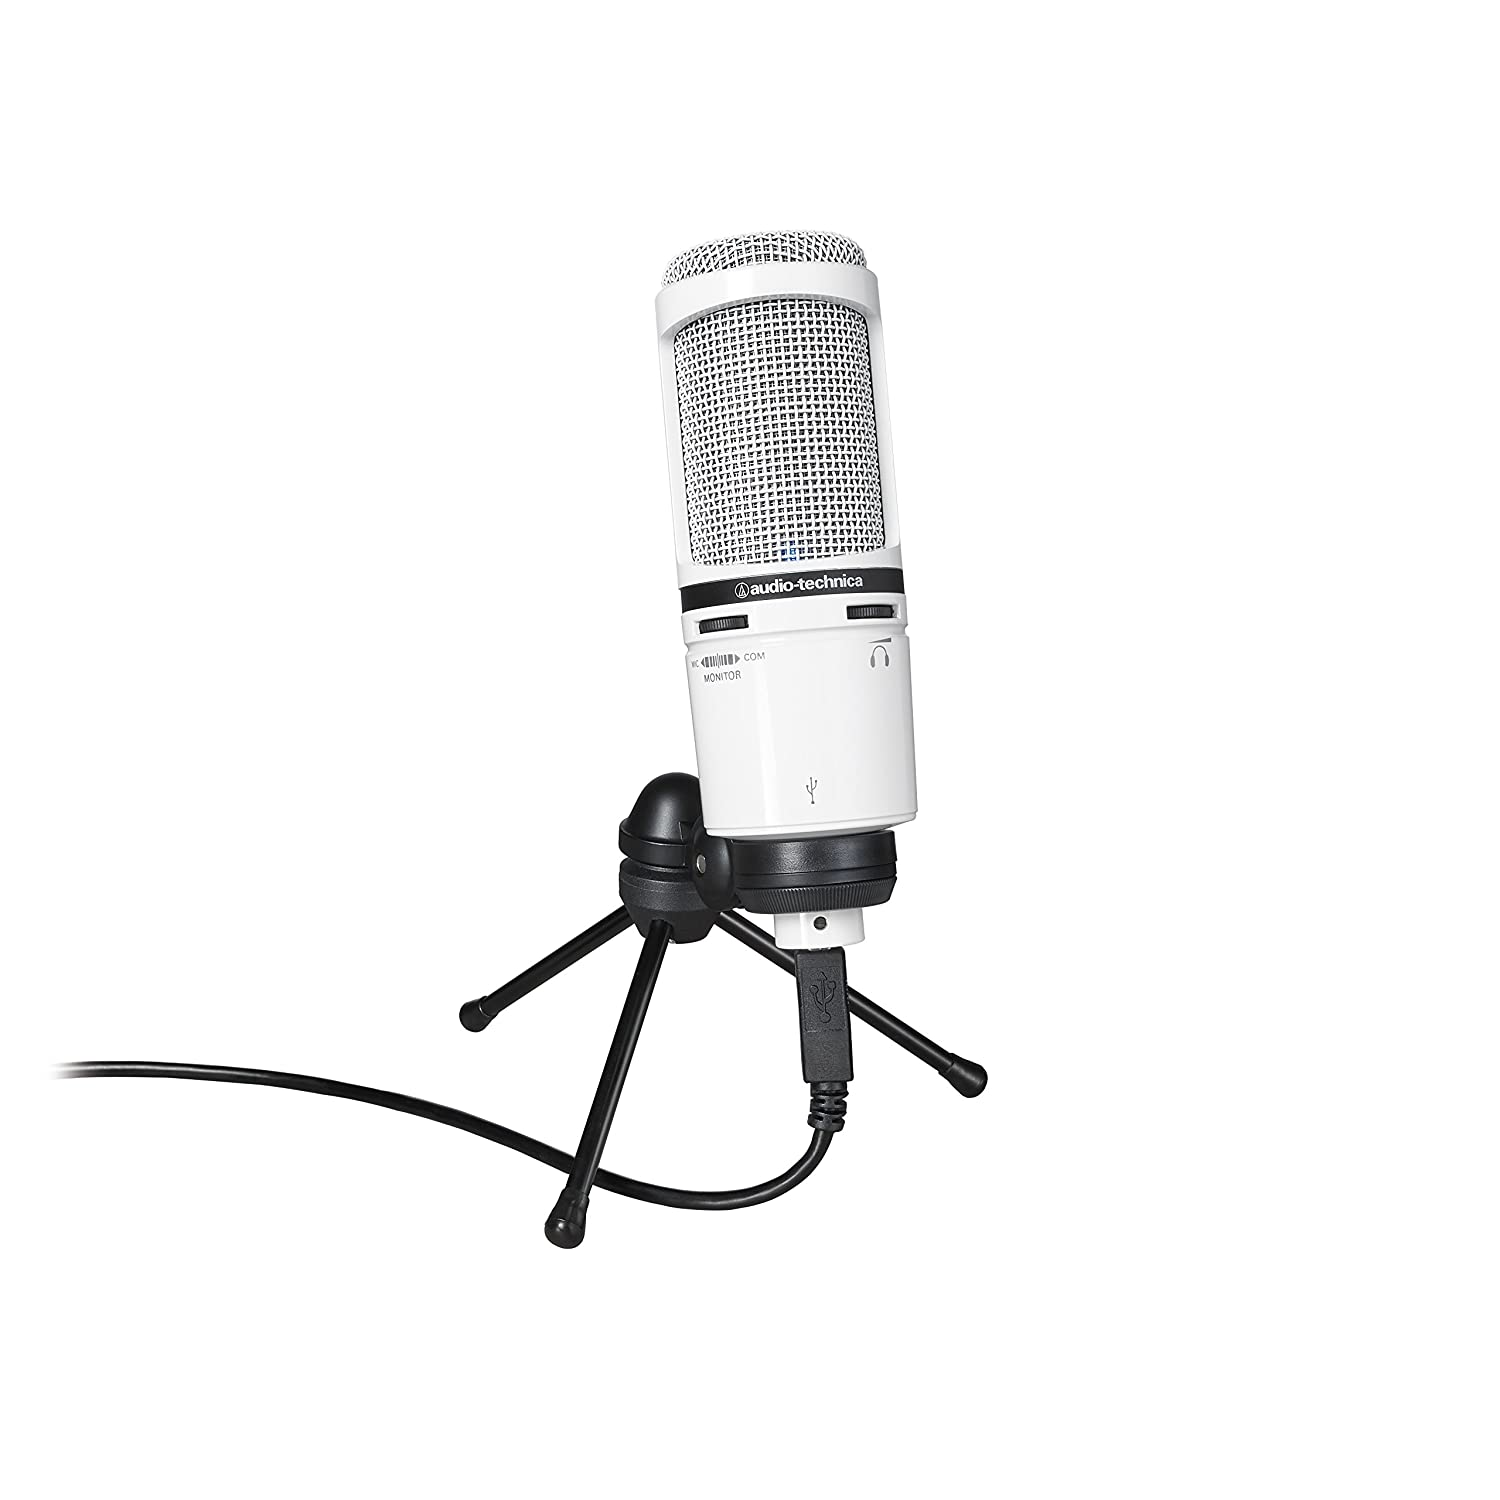 Audio-Technica AT2020USB+ Cardioid Condenser USB Microphone, Black AT2020USB PLUS